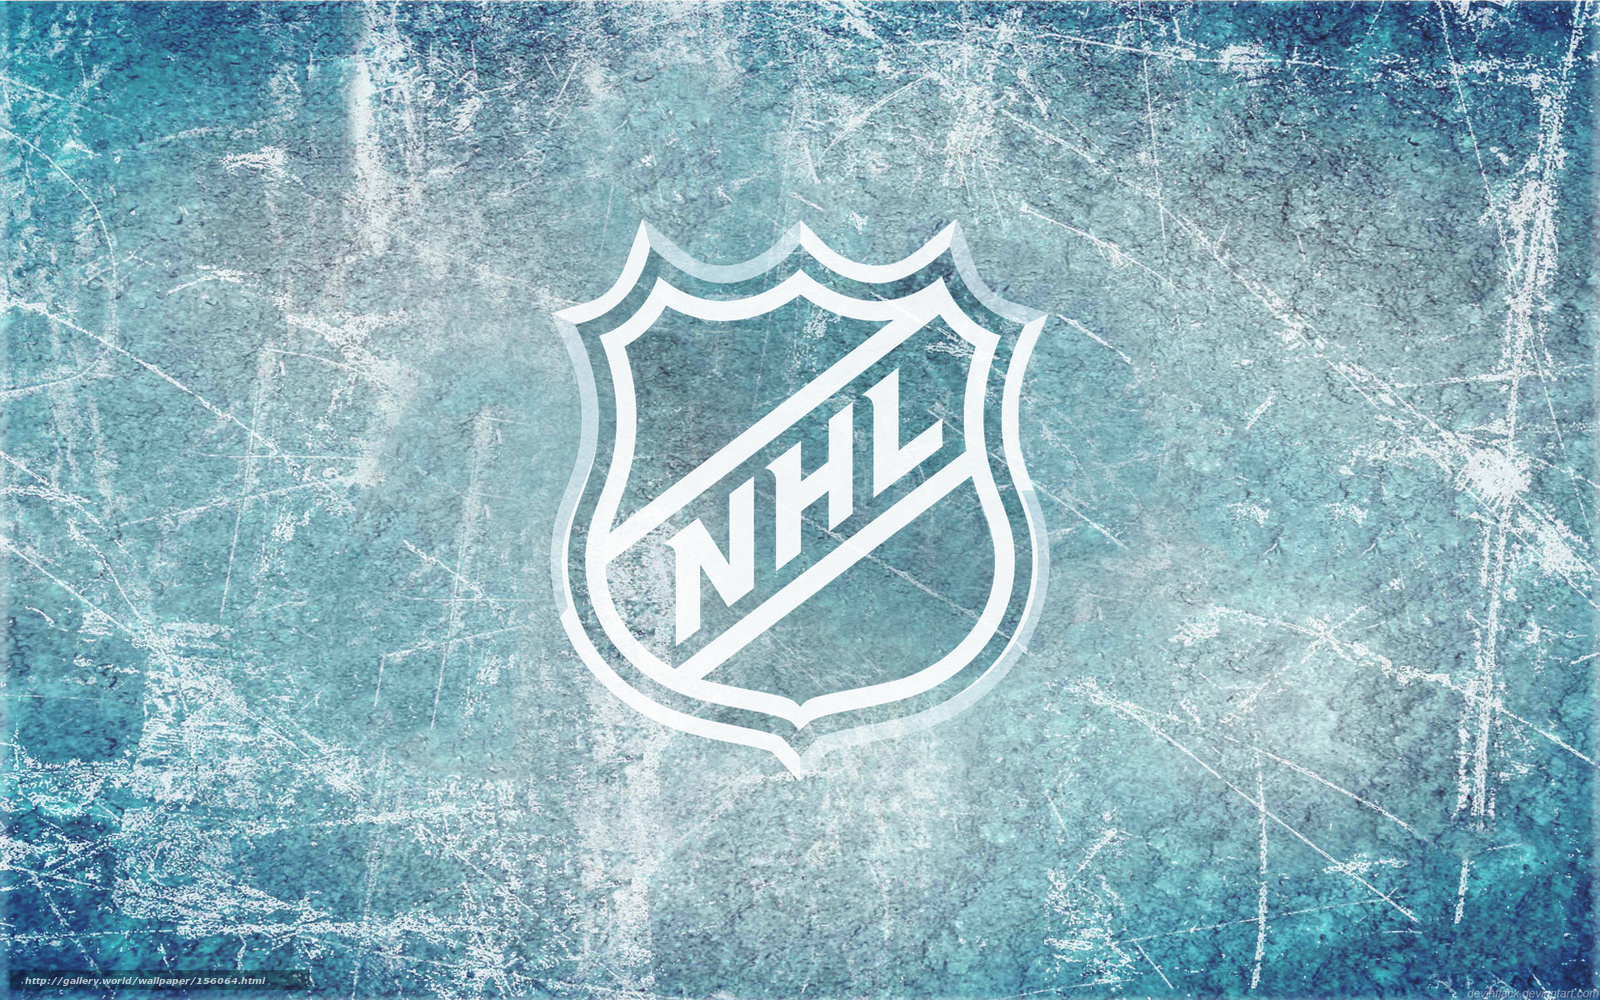 Download wallpaper sport hockey nhl desktop wallpaper in the 1600x1000